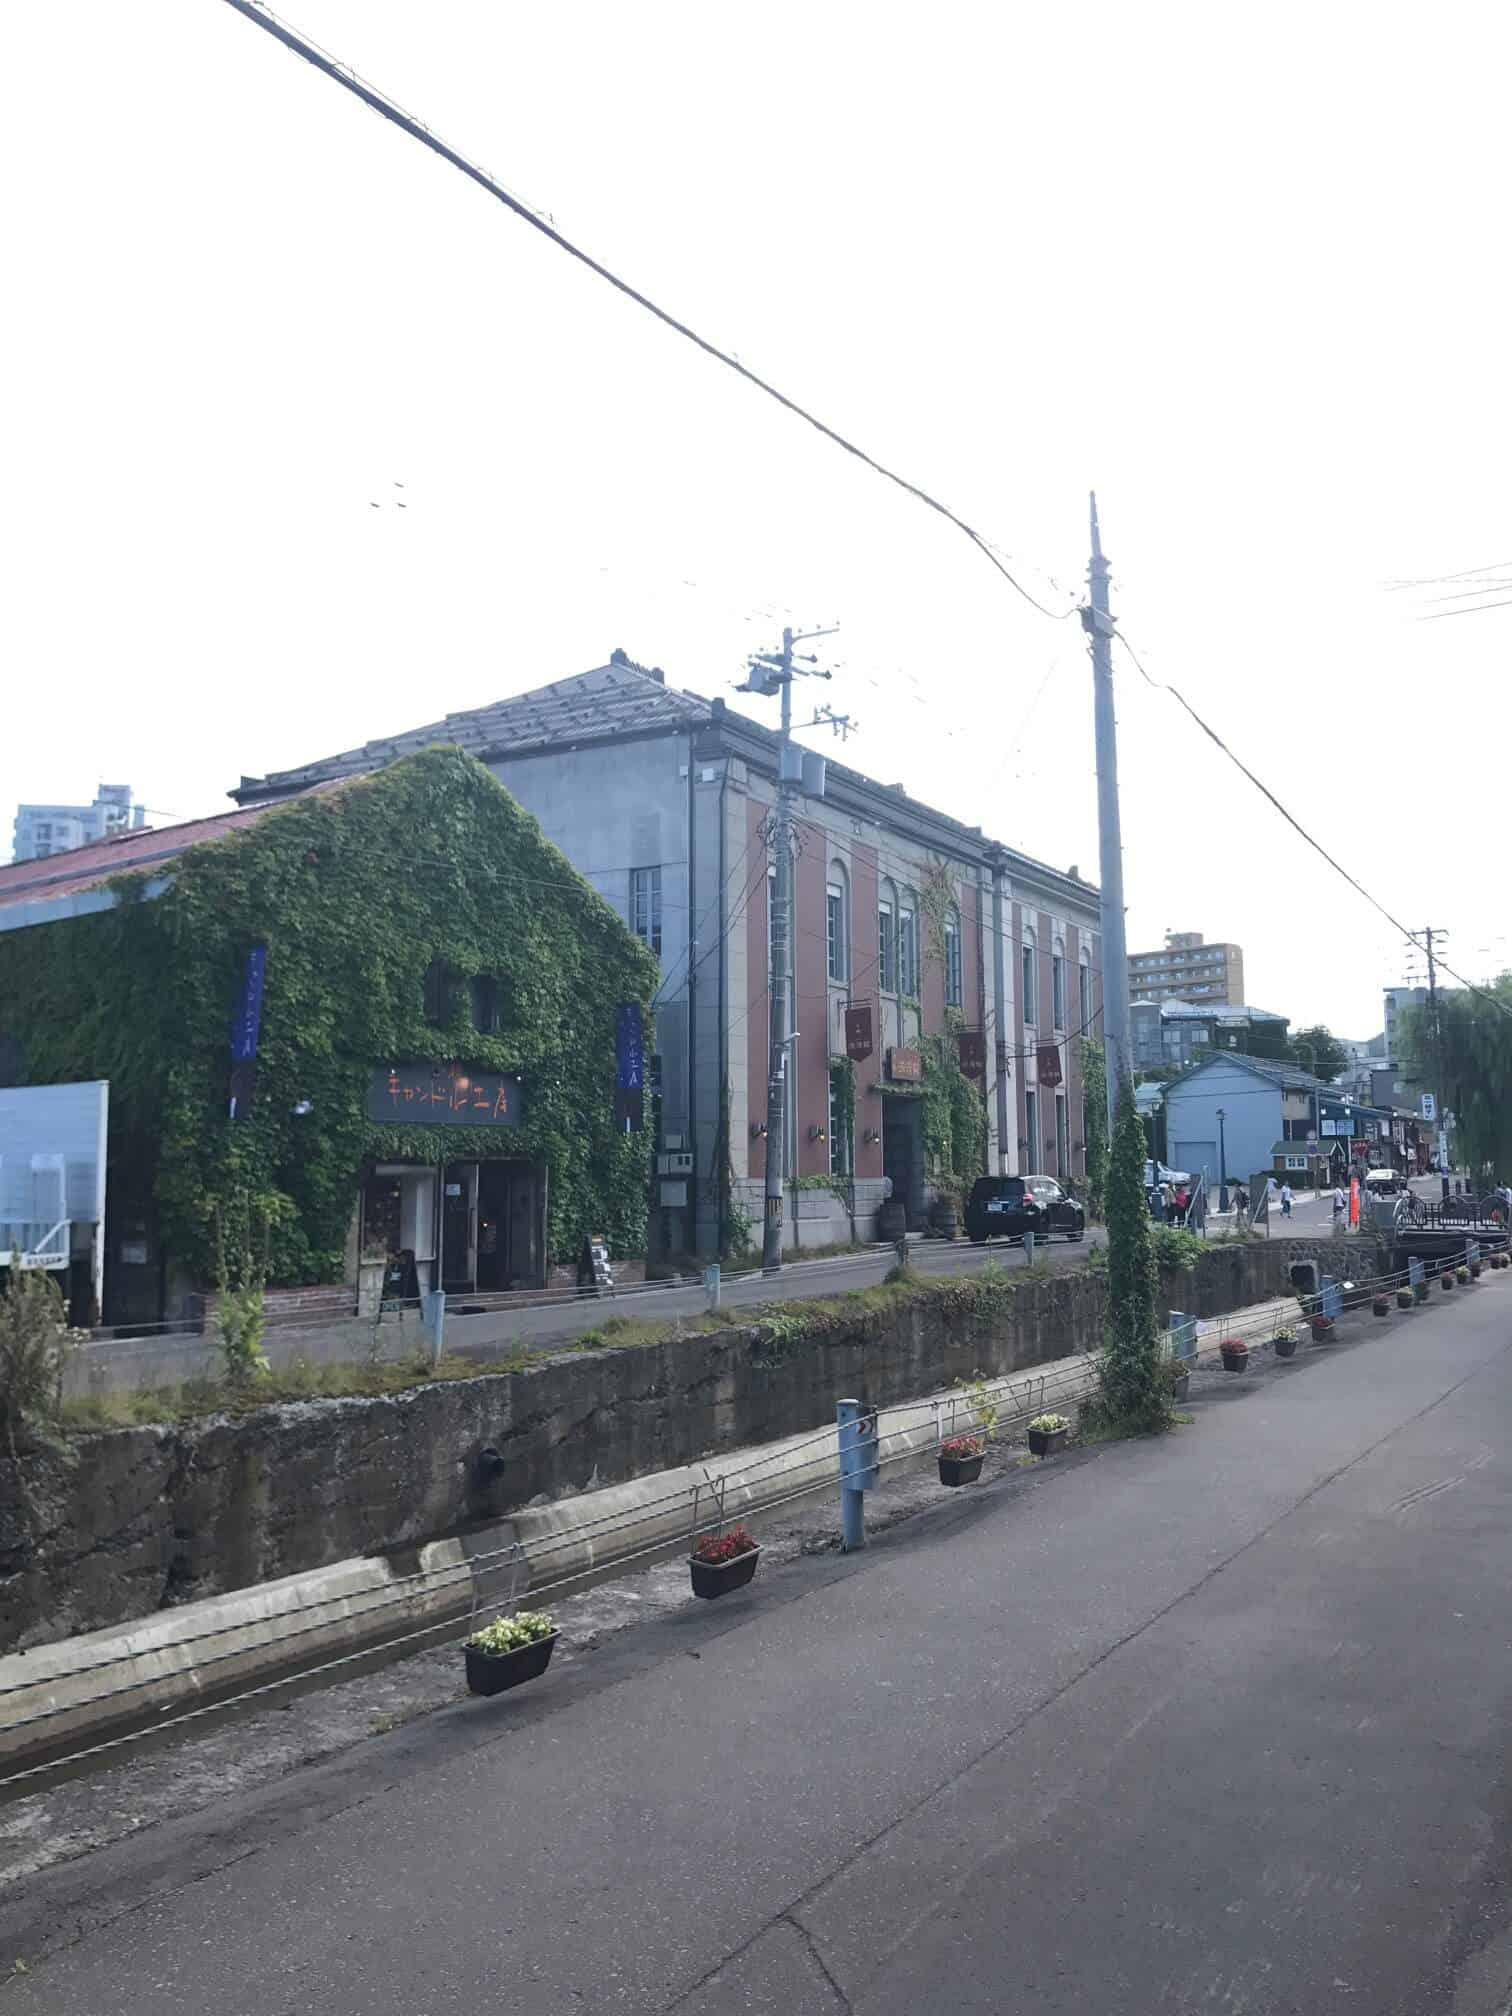 Glass Blowing on your Best Things to do in Otaru Itinerary